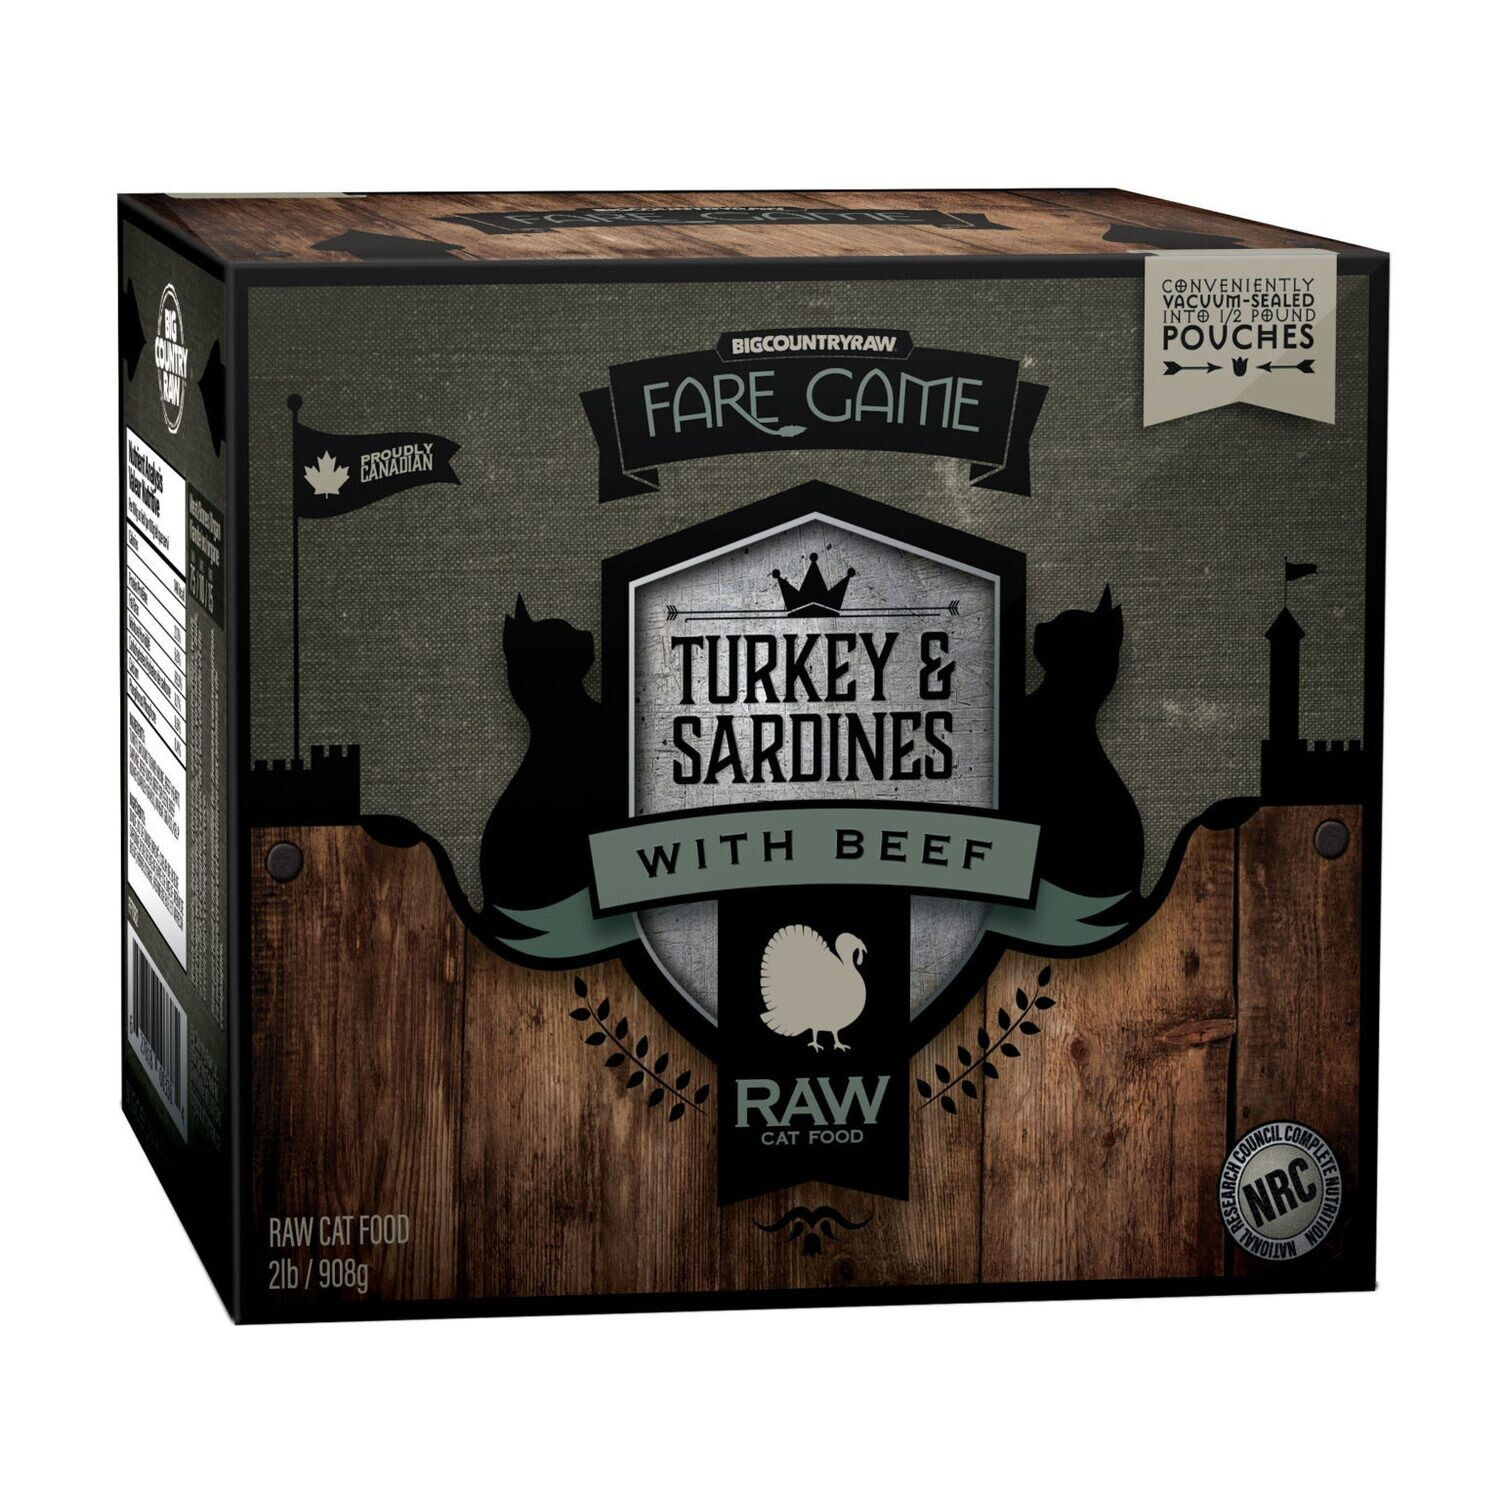 BCR FARE GAME TURKEY & SARDINES WITH BEEF 2LB